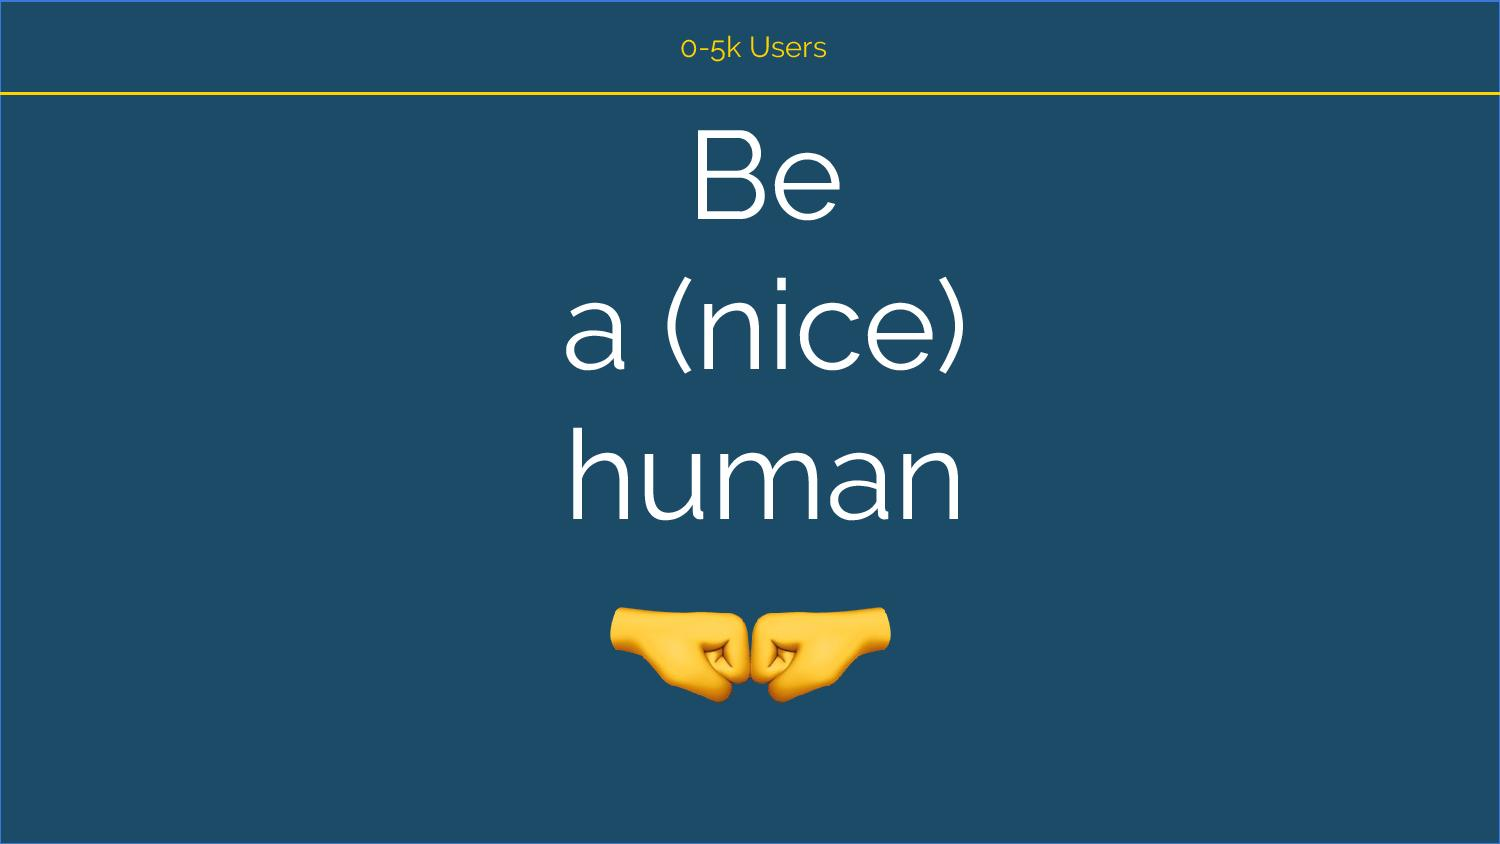 0 to 5k Users: Be a nice human [Fist bump emoji]